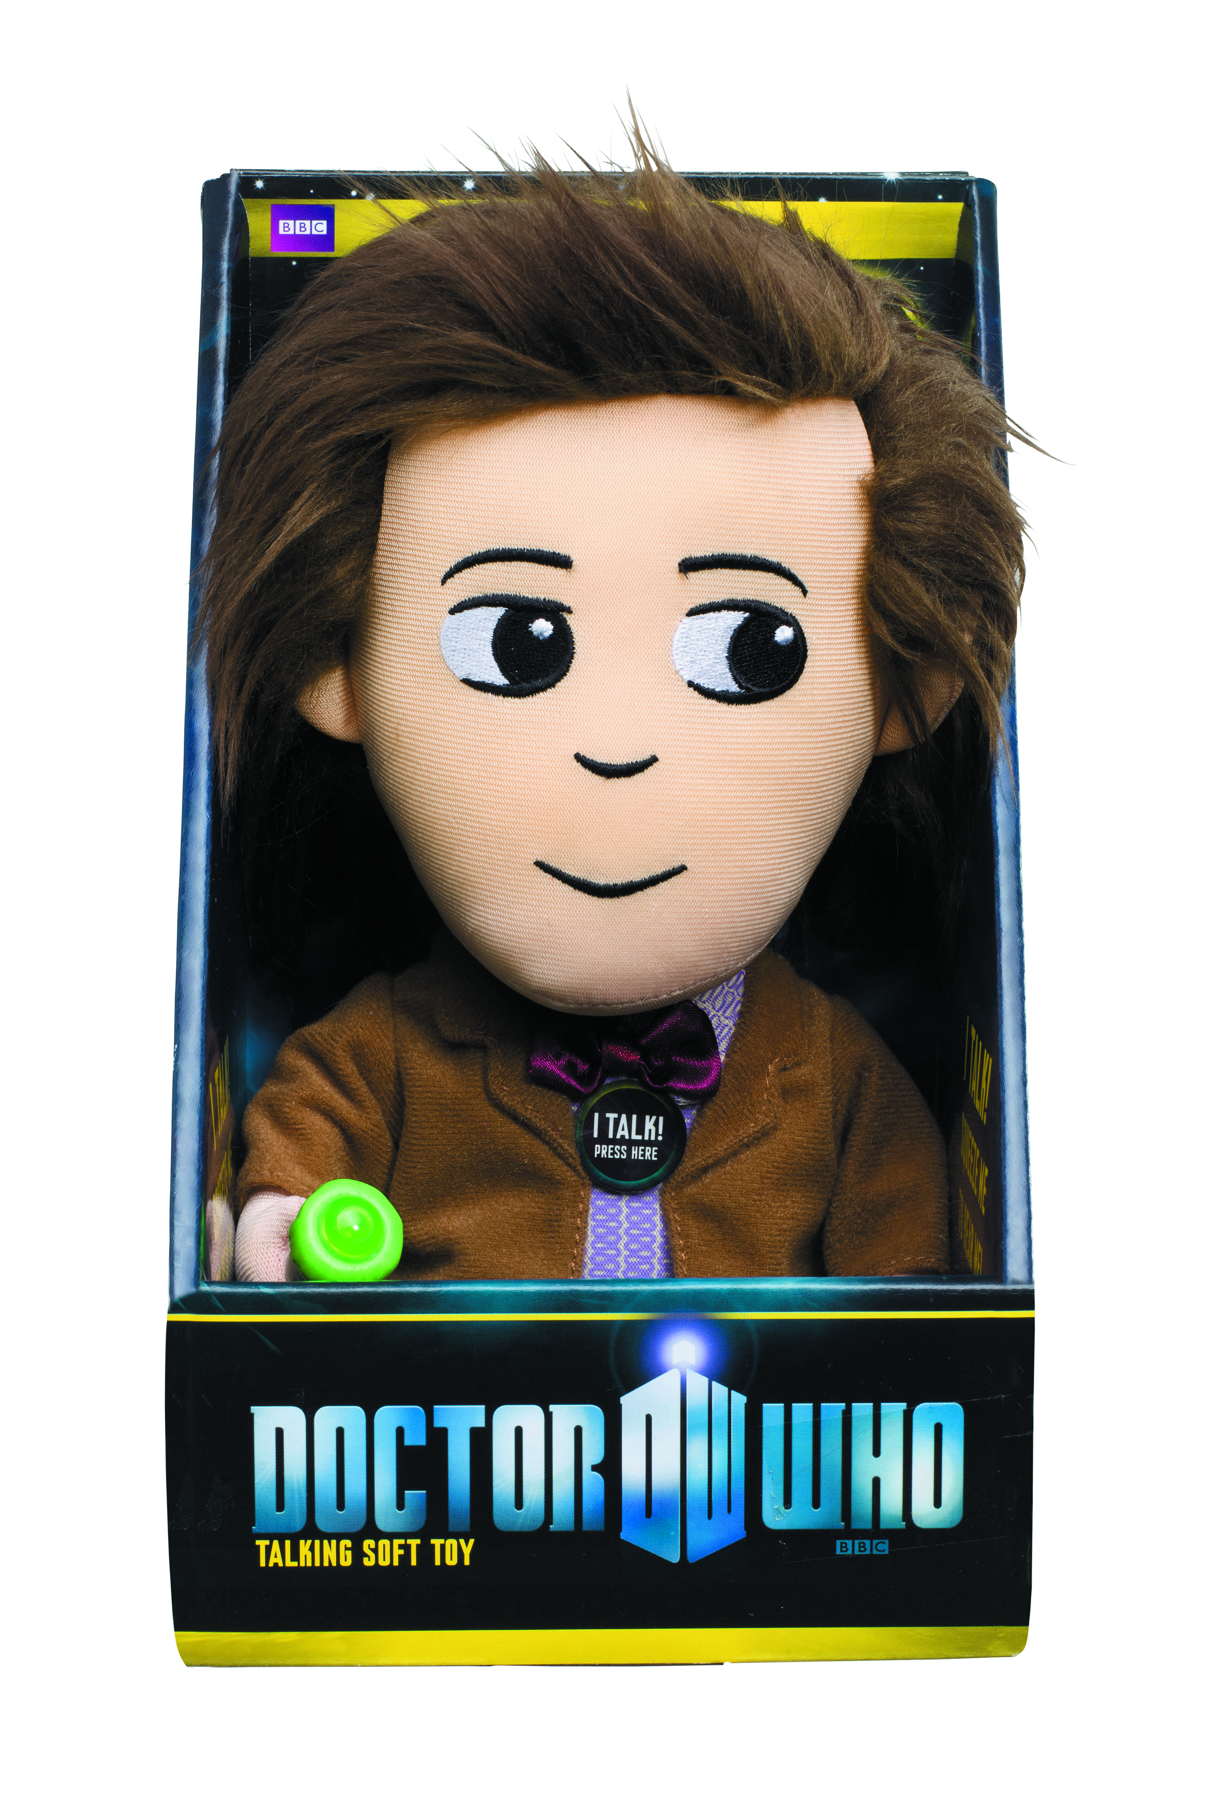 DOCTOR WHO 11TH DOCTOR MEDIUM TALKING PLUSH